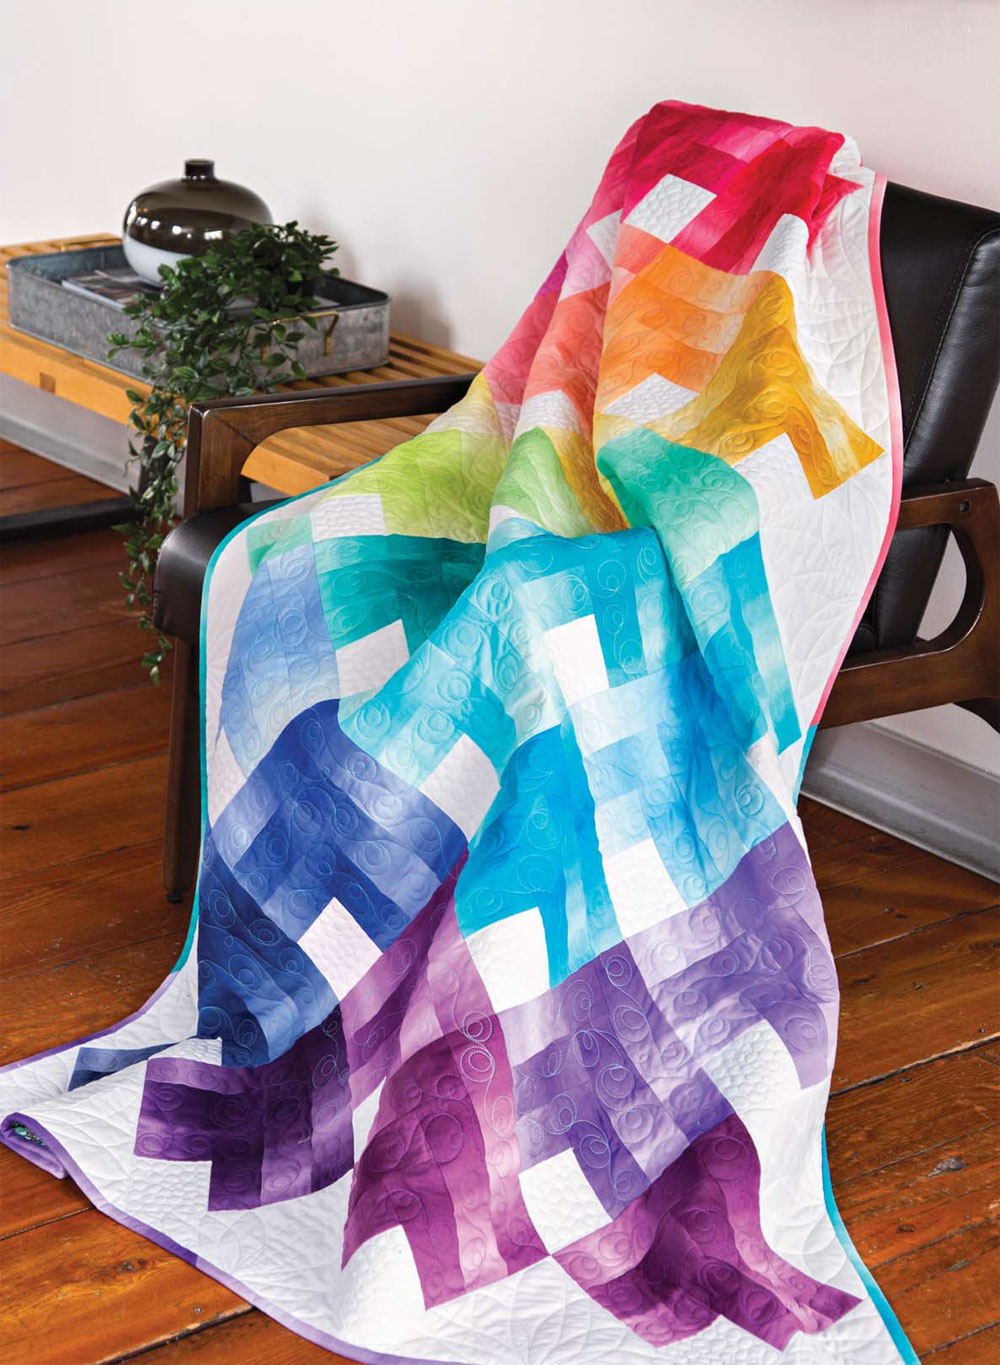 Melting Candy Quilt by Gina Tell